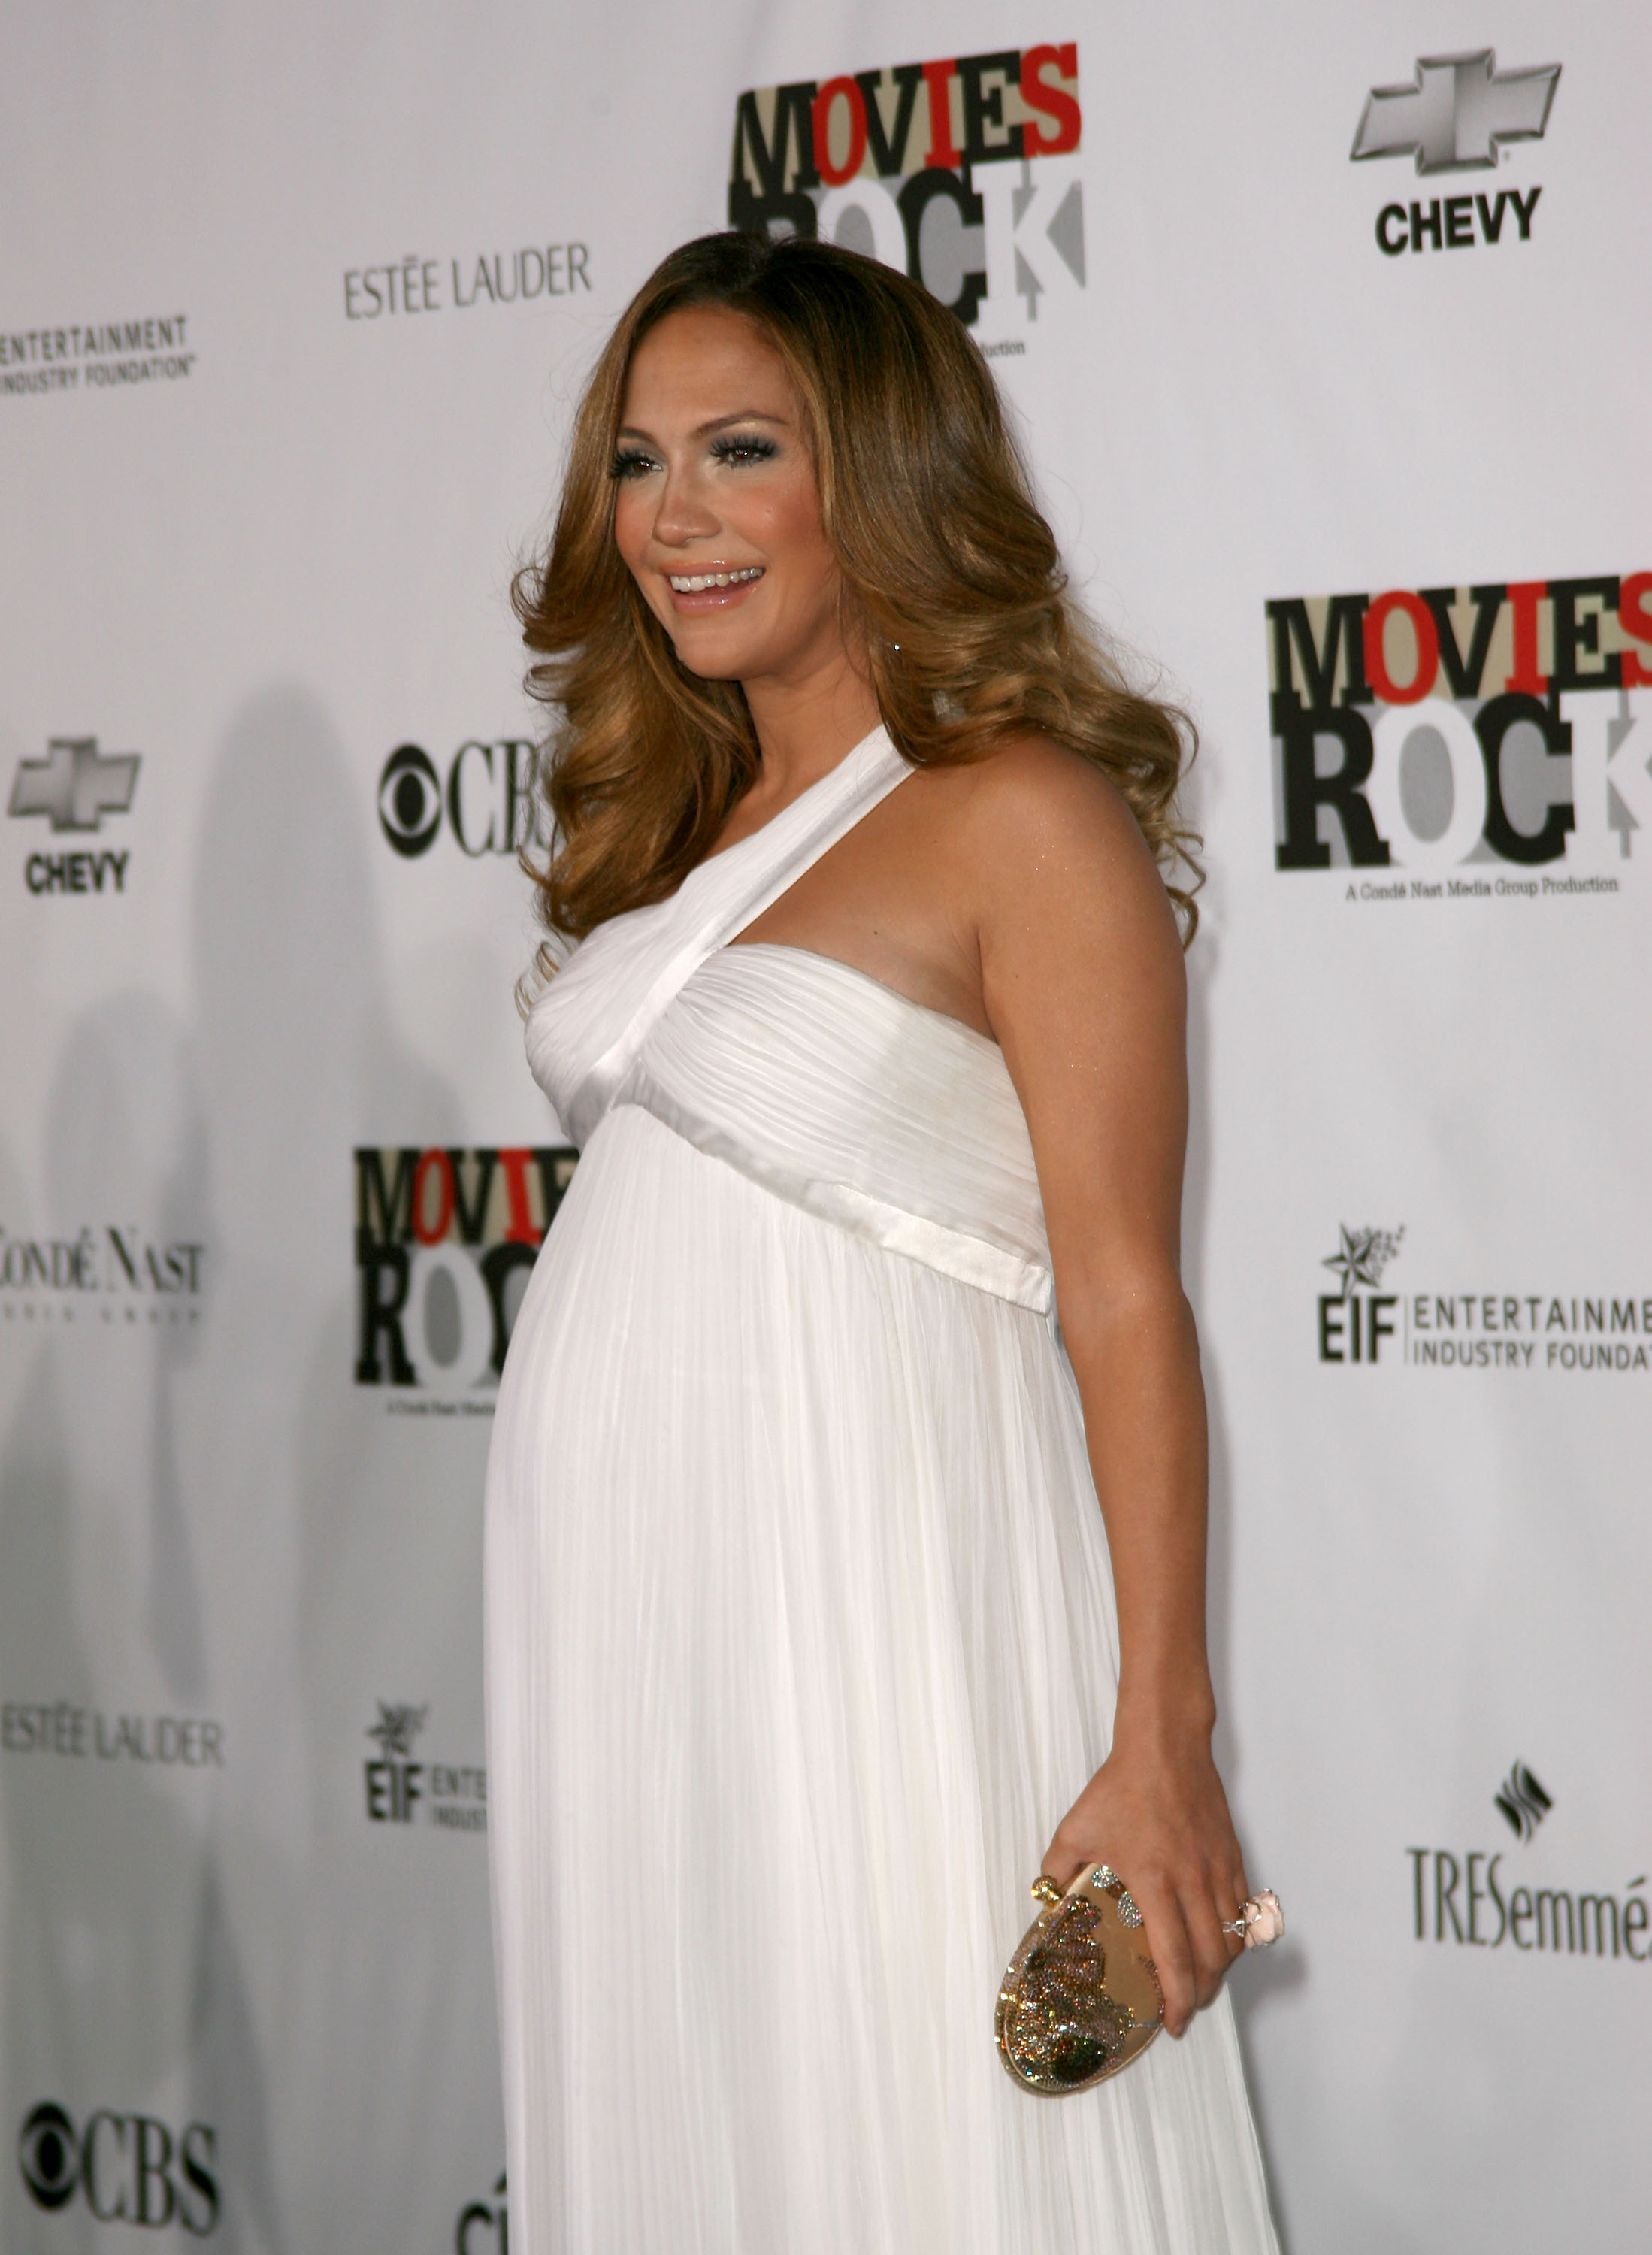 84465_Celebutopia-Jennifer_Lopez-Movies_Rock_A_Celebration_Of_Music_In_Film_in_Hollywood-10_123_1060lo.jpg